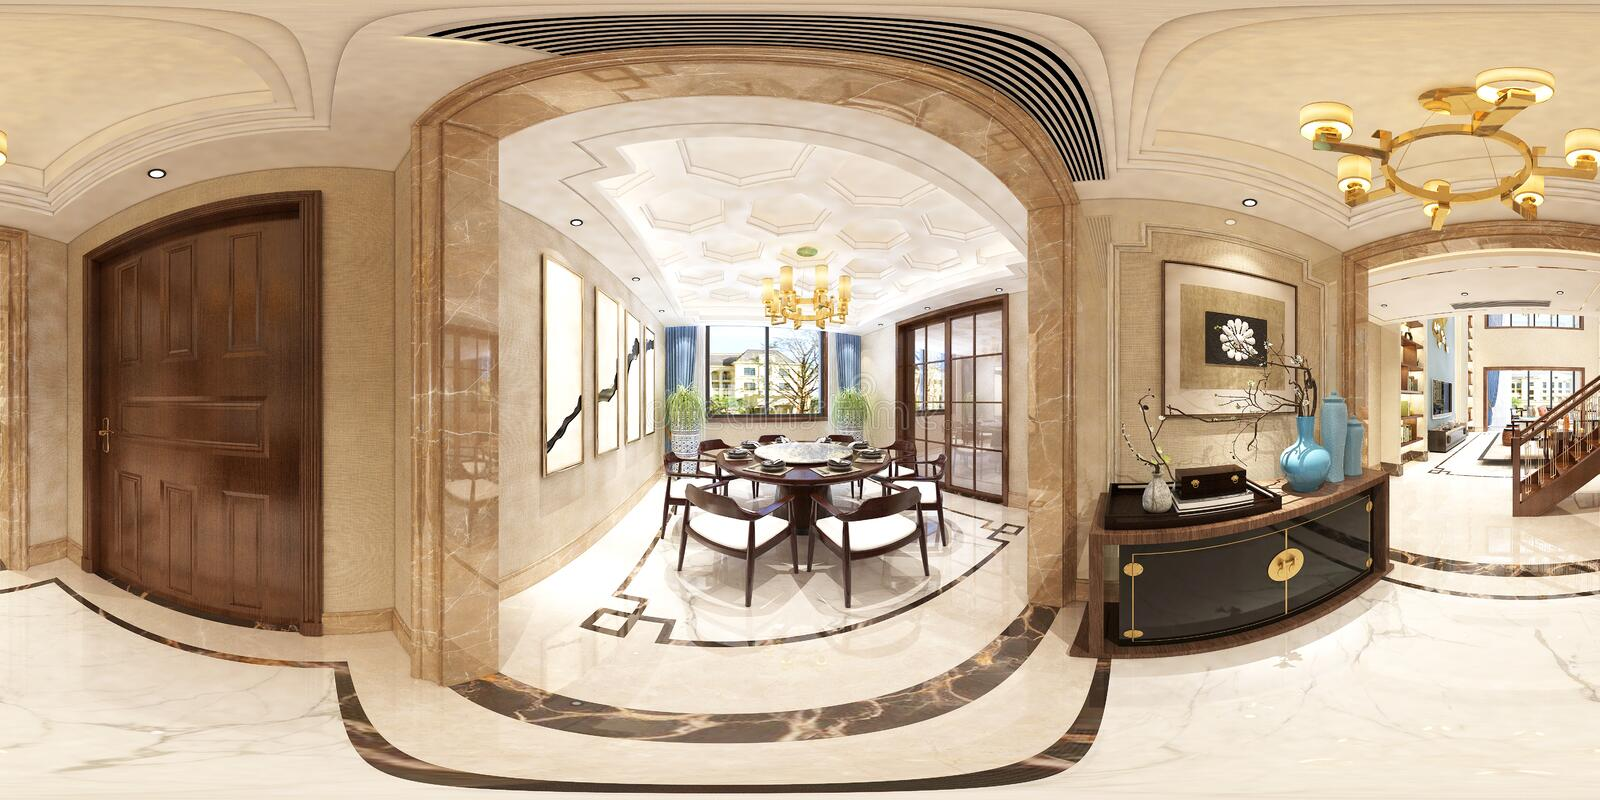 3d render of 360 degrees living and dining room vector illustration